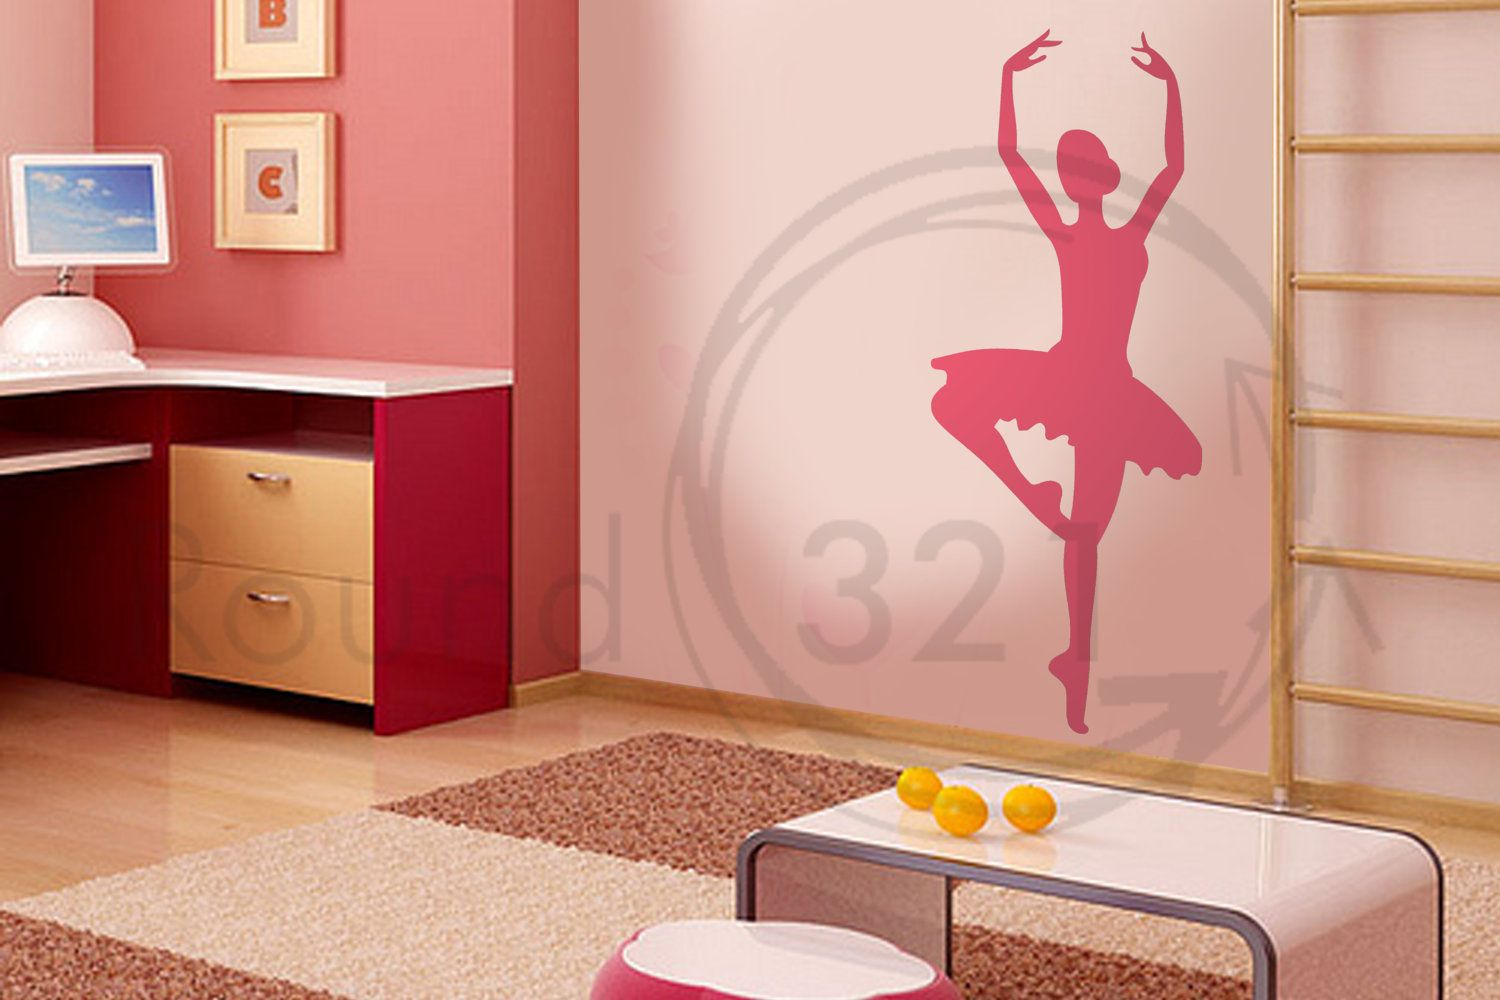 17 Best images about Ideas for Chloey s bedroom on Pinterest   Toddler girl  bedrooms  Ballet and Ballerina room. 17 Best images about Ideas for Chloey s bedroom on Pinterest